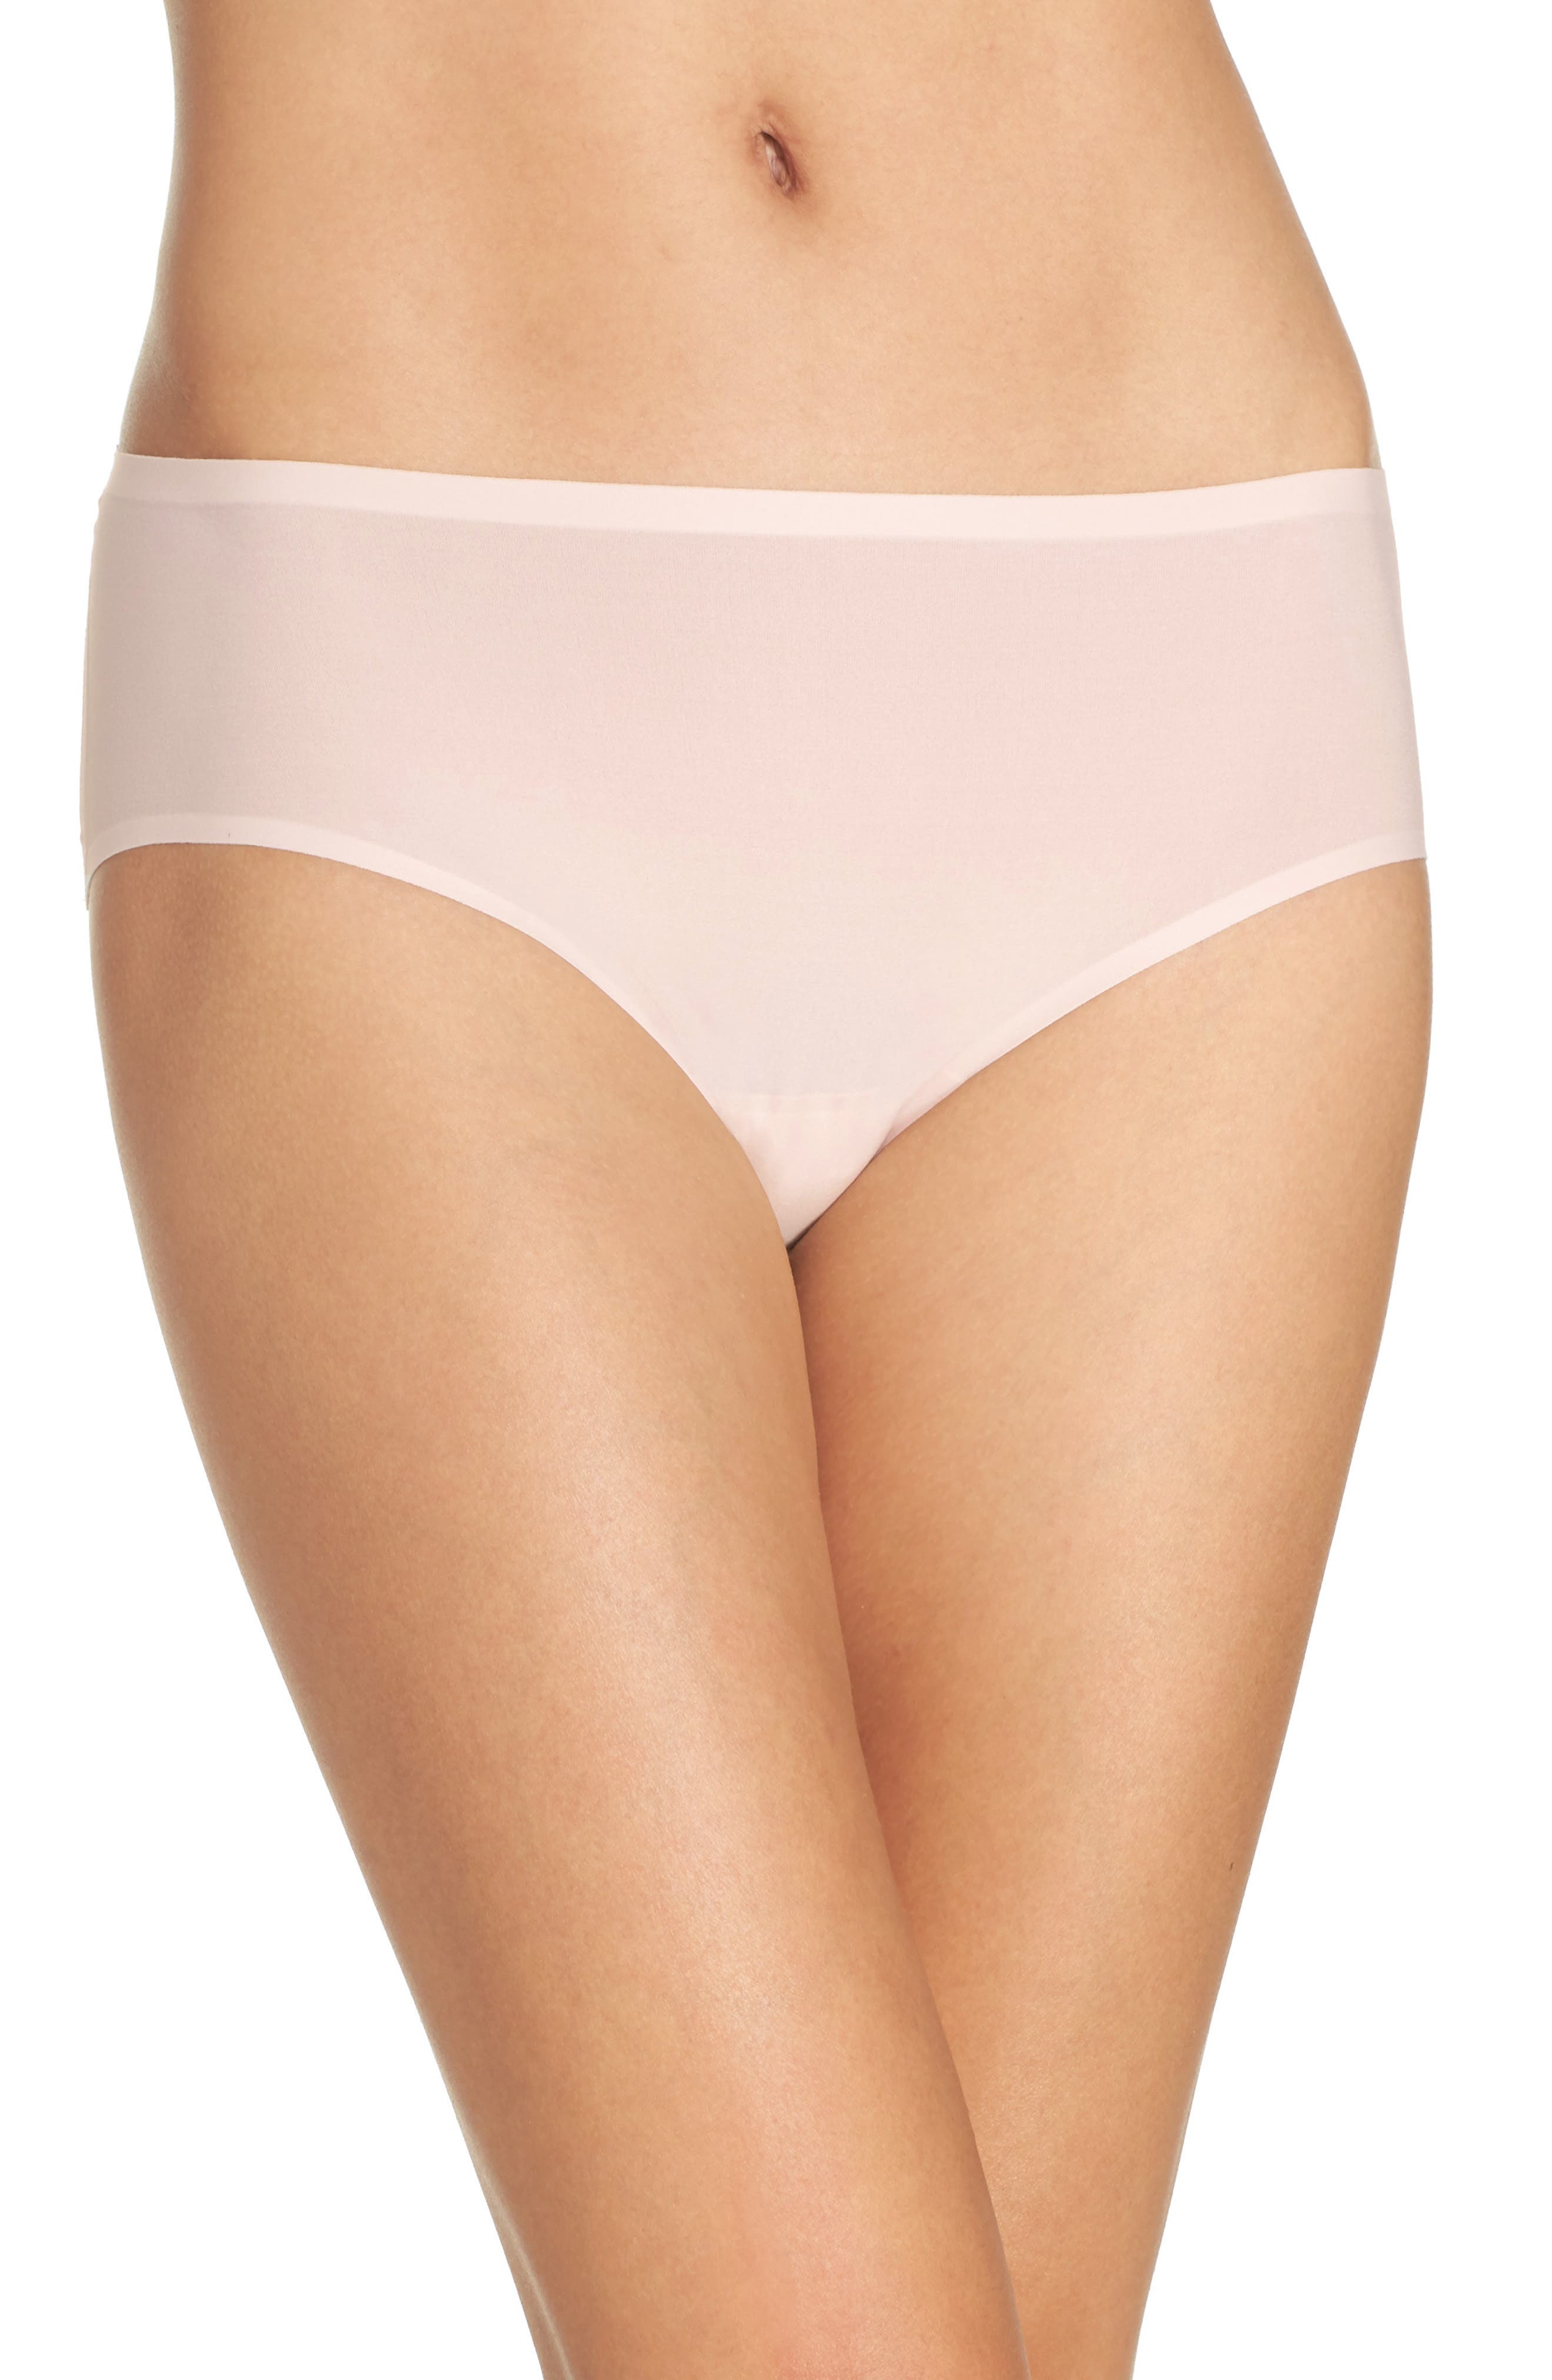 Alternate Image 1 Selected - Chantelle Intimates Soft Stretch Seamless Hipster Panties (3 for $45)